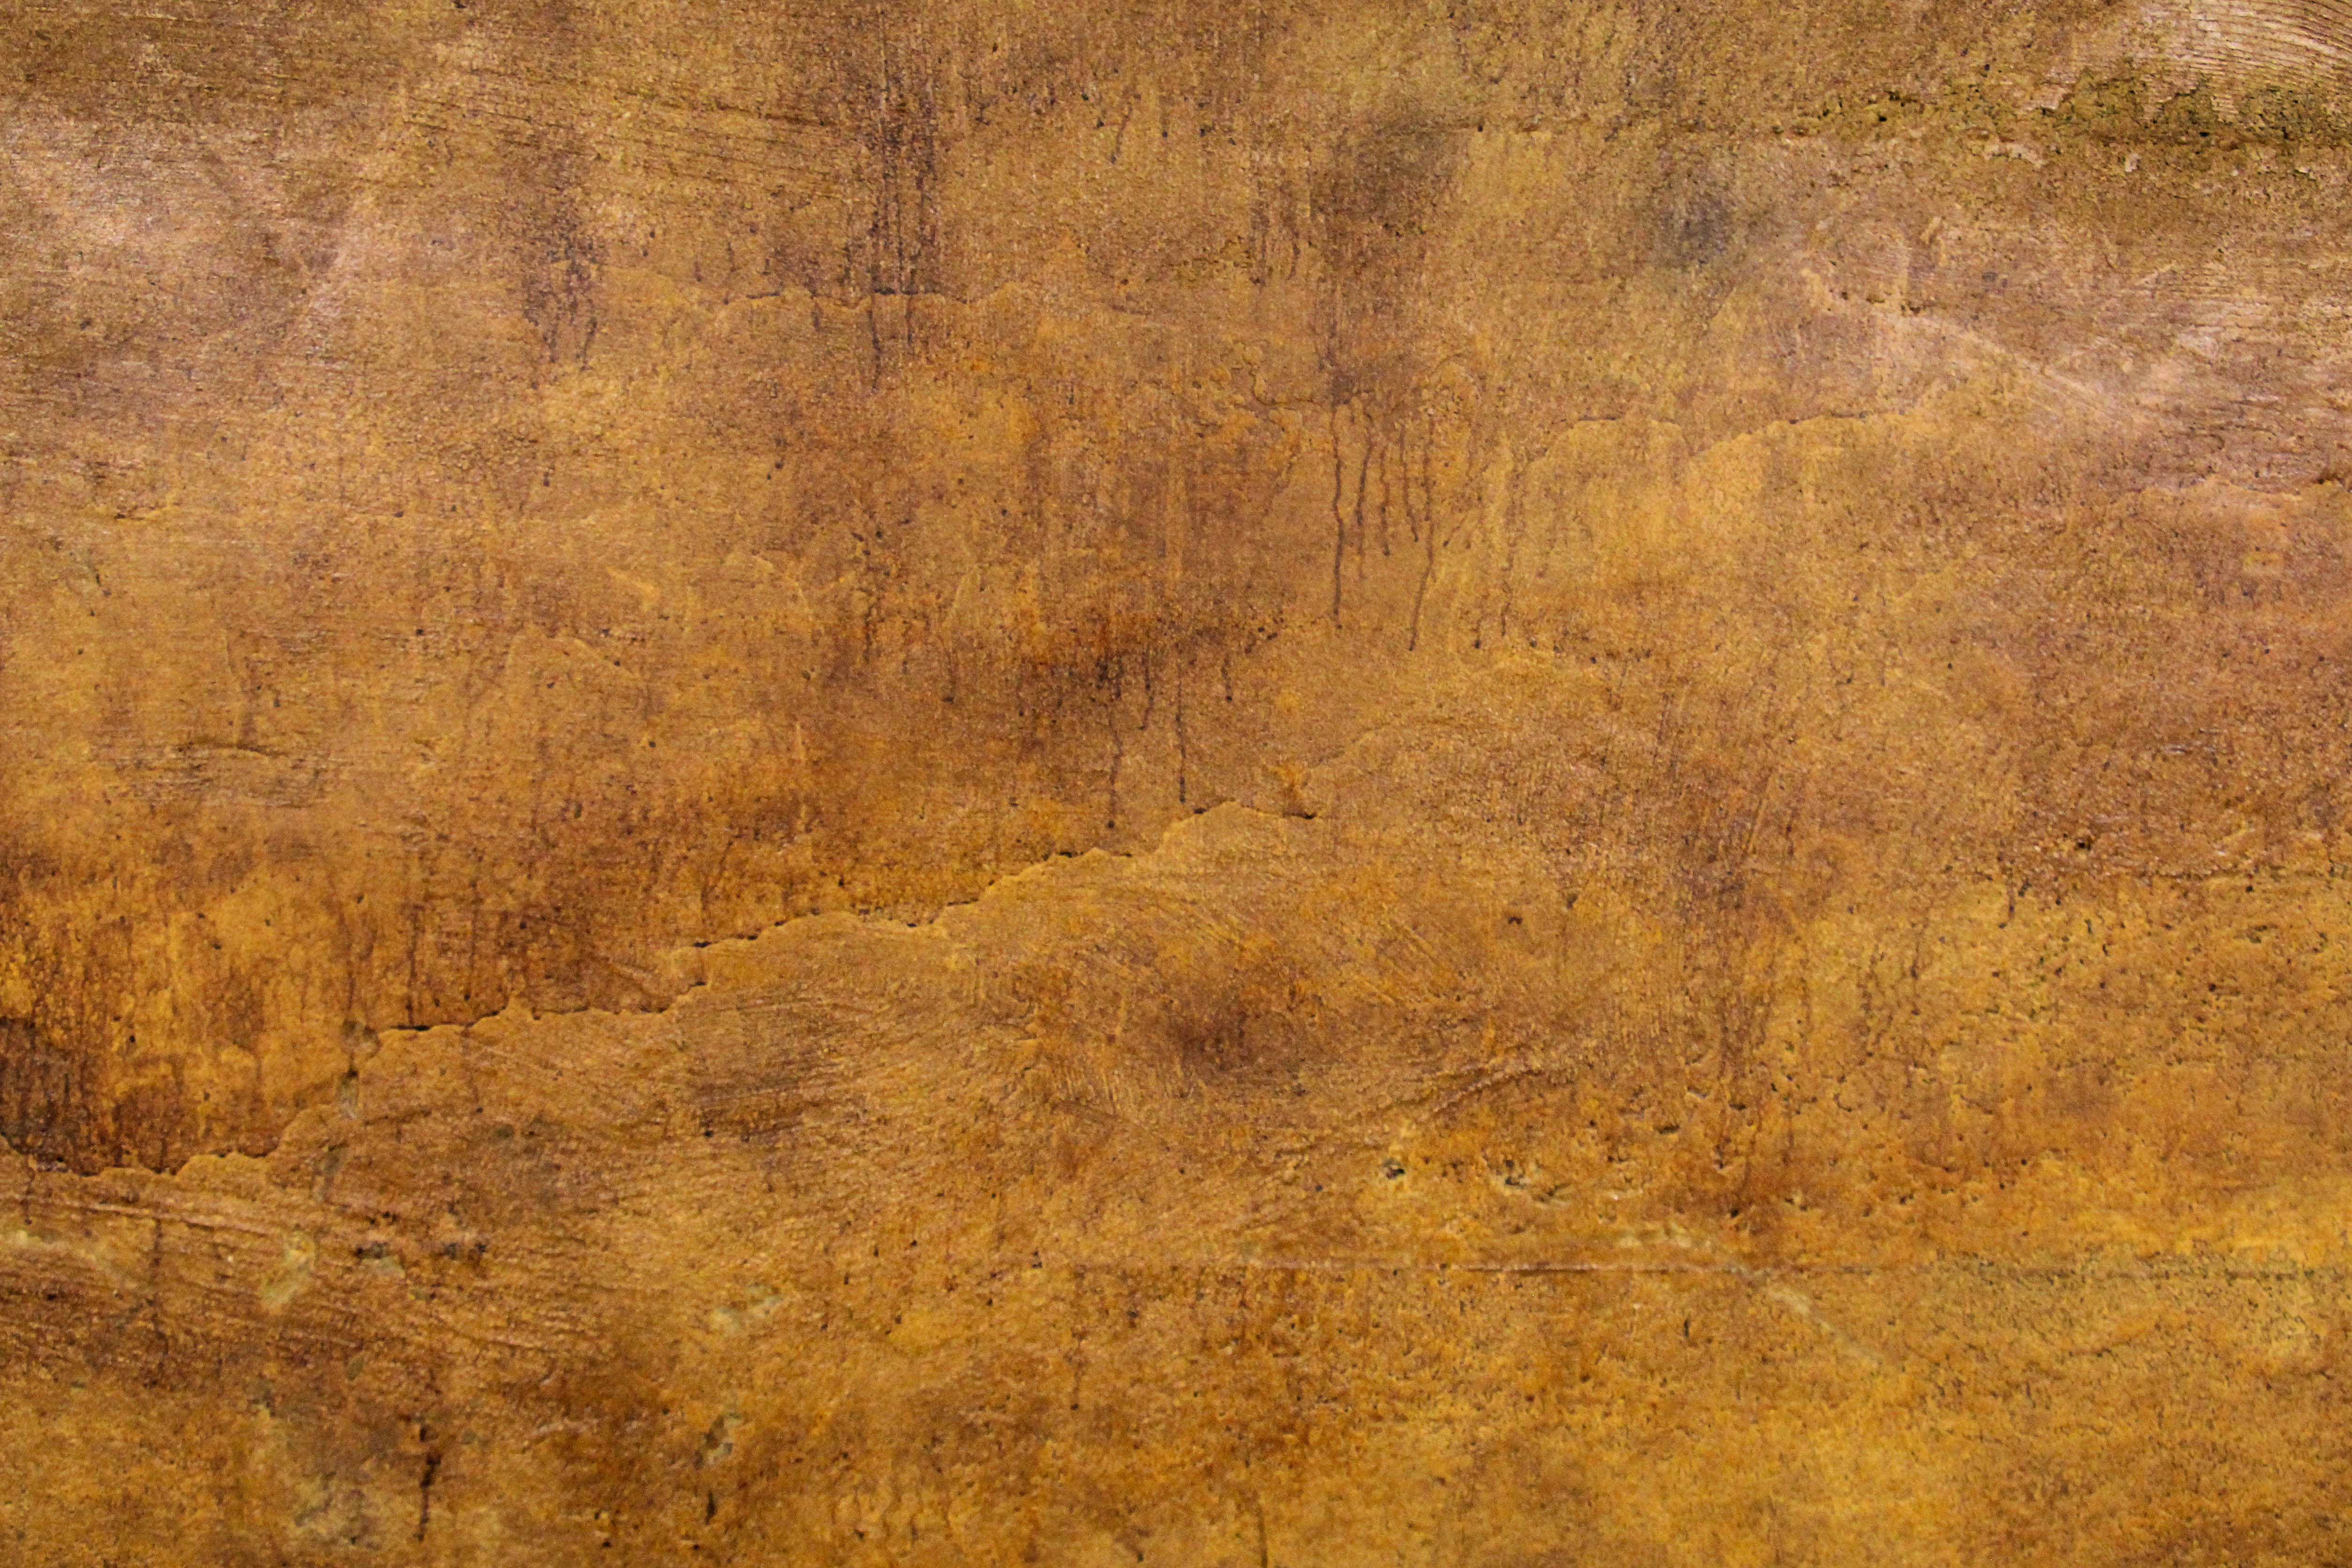 Orange Cement Wall : Grunge texture dripping stained concrete wall orange brown